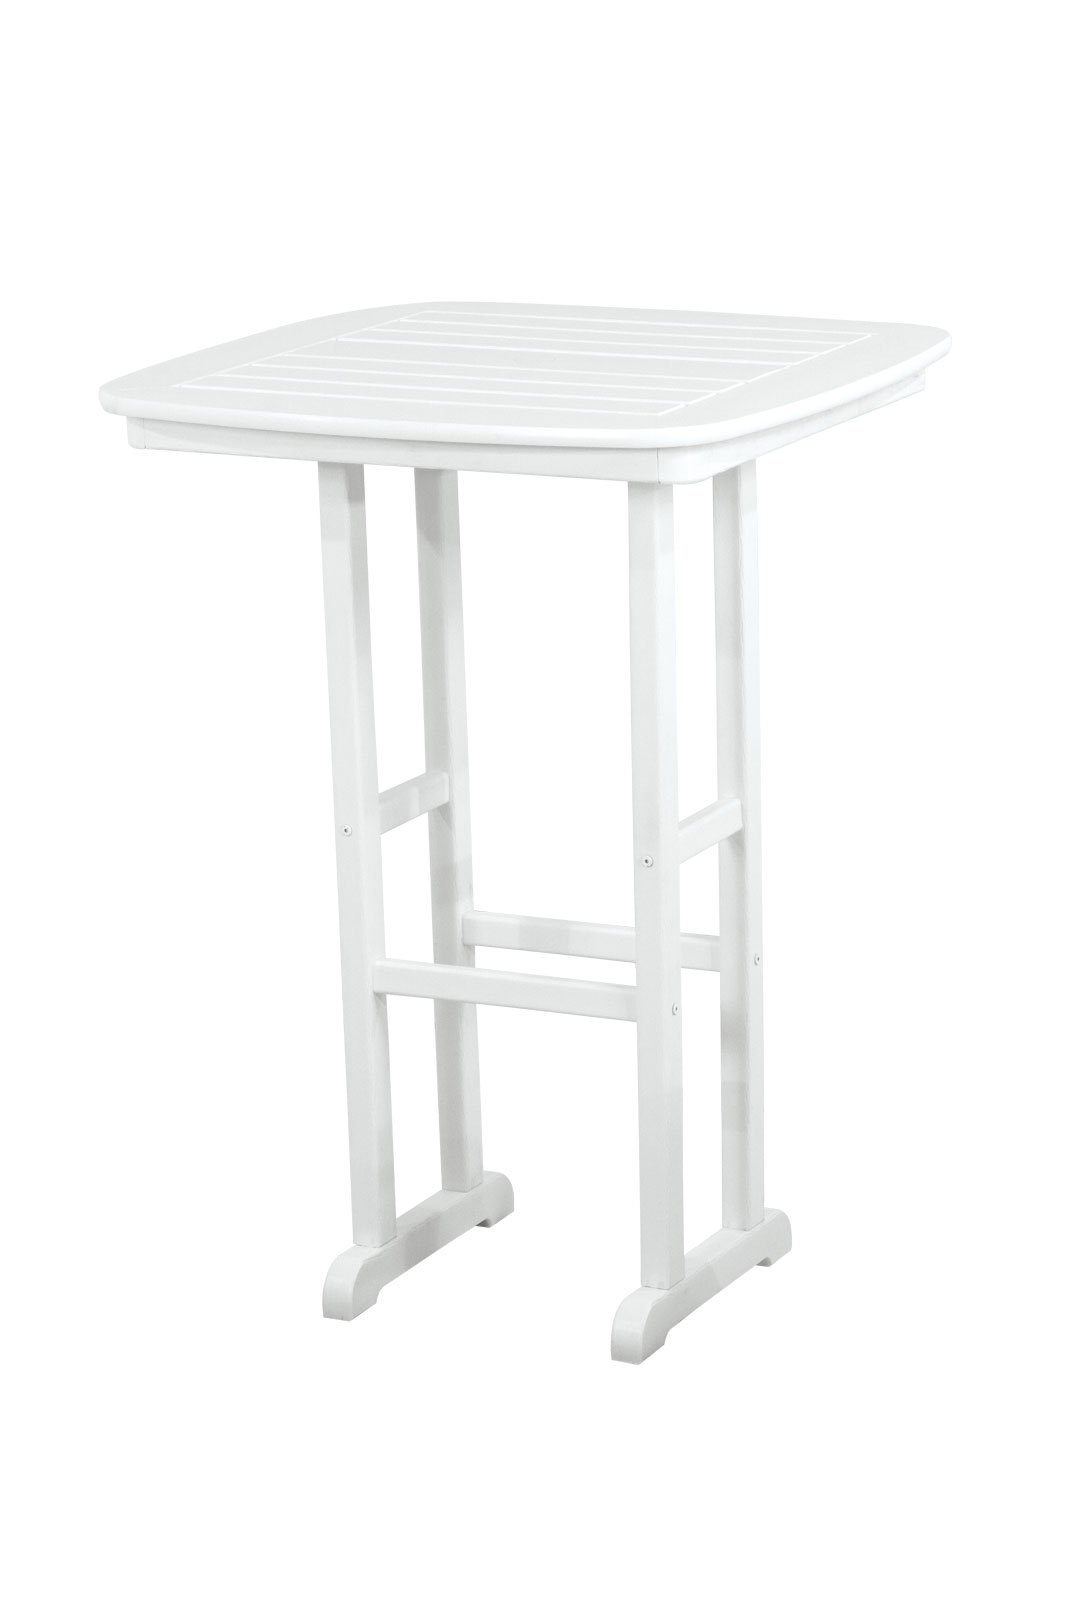 POLYWOOD NCBT31WH Nautical Bar Table, 31-Inch, White